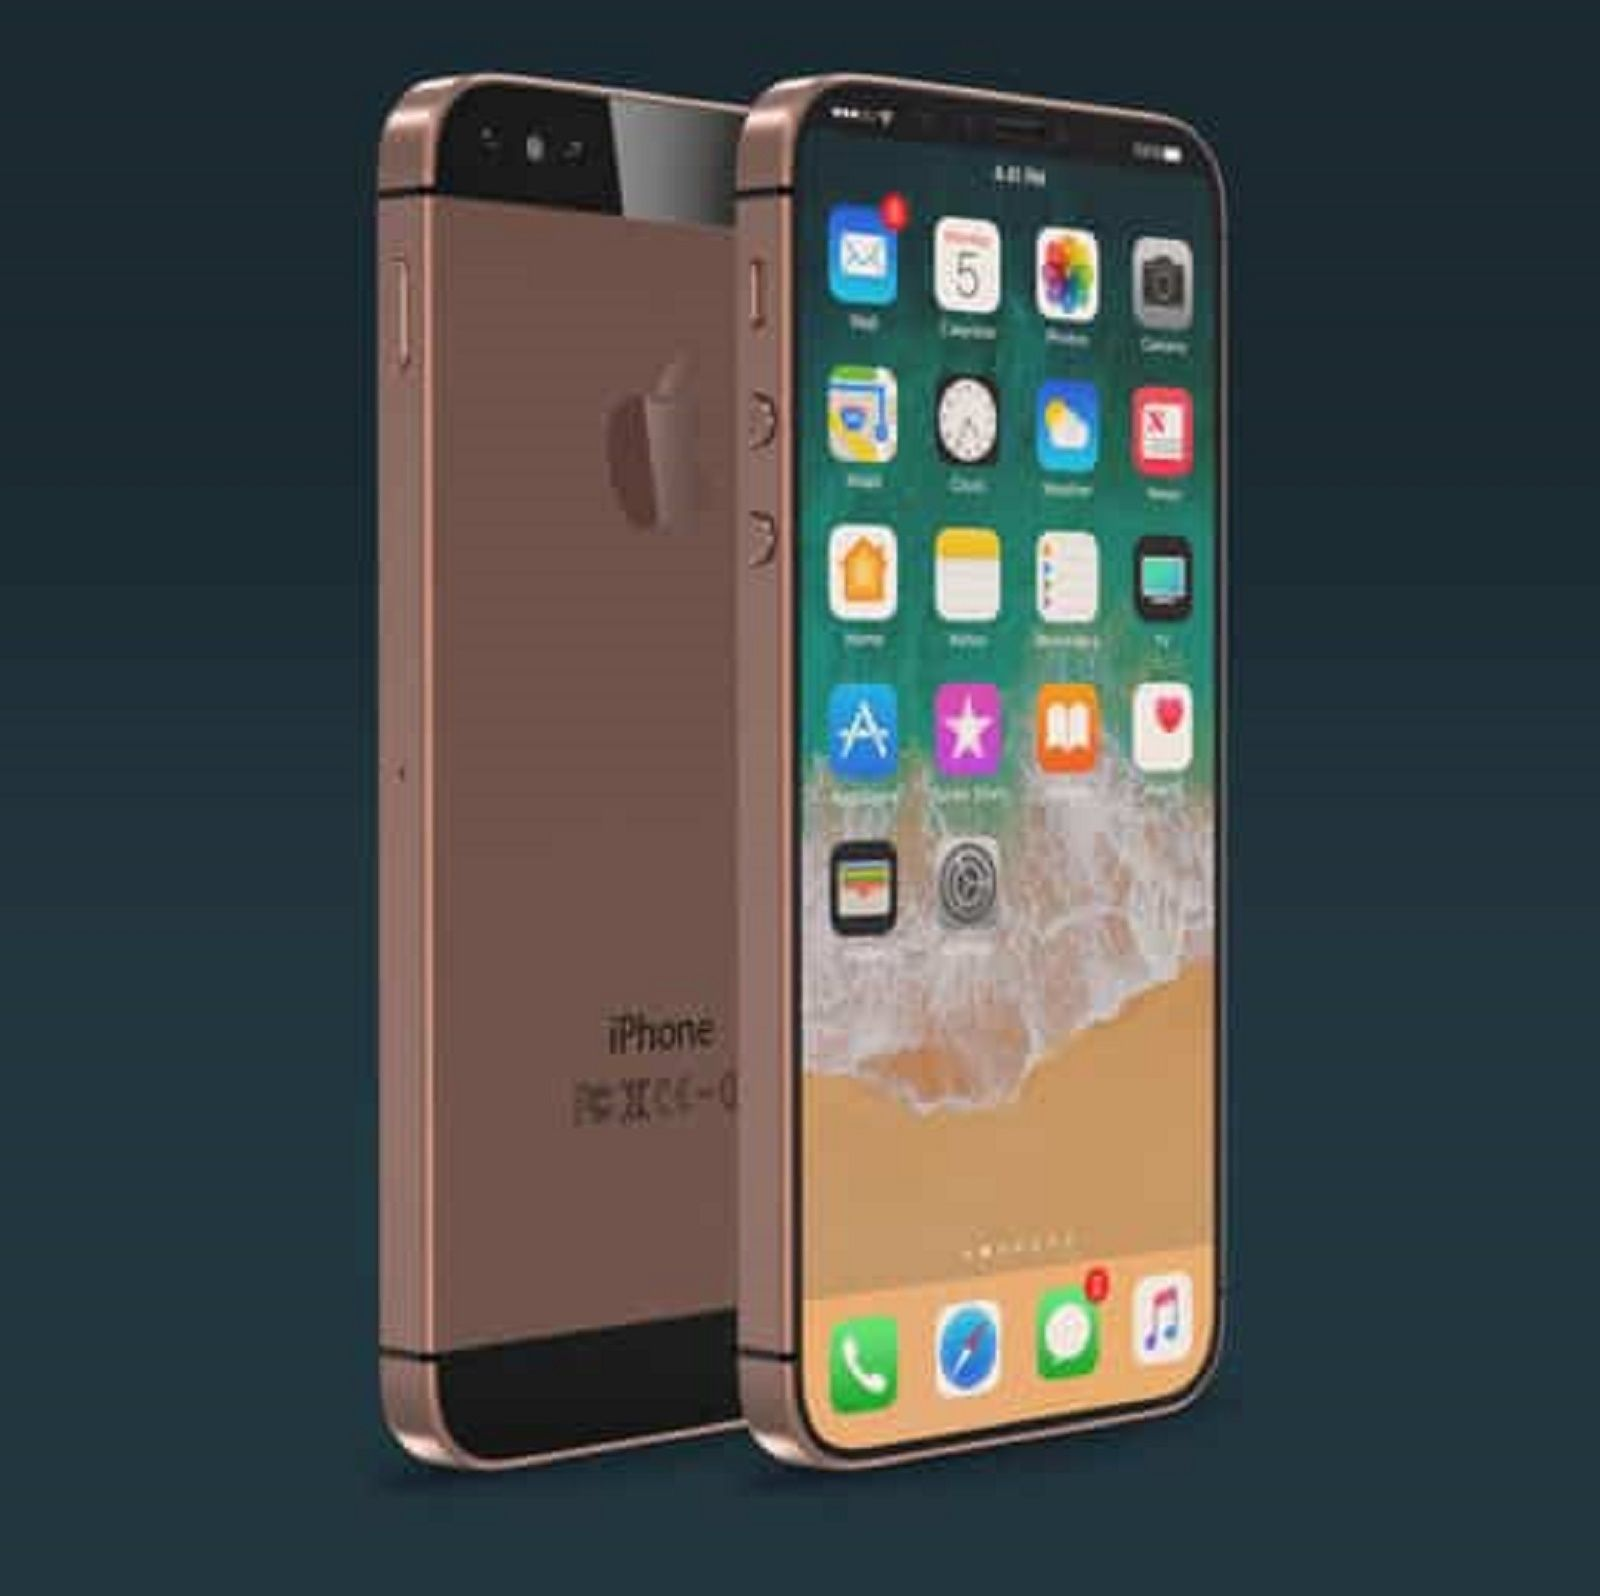 Apple iPhone SE 2: Price, Specifications, Launch date!